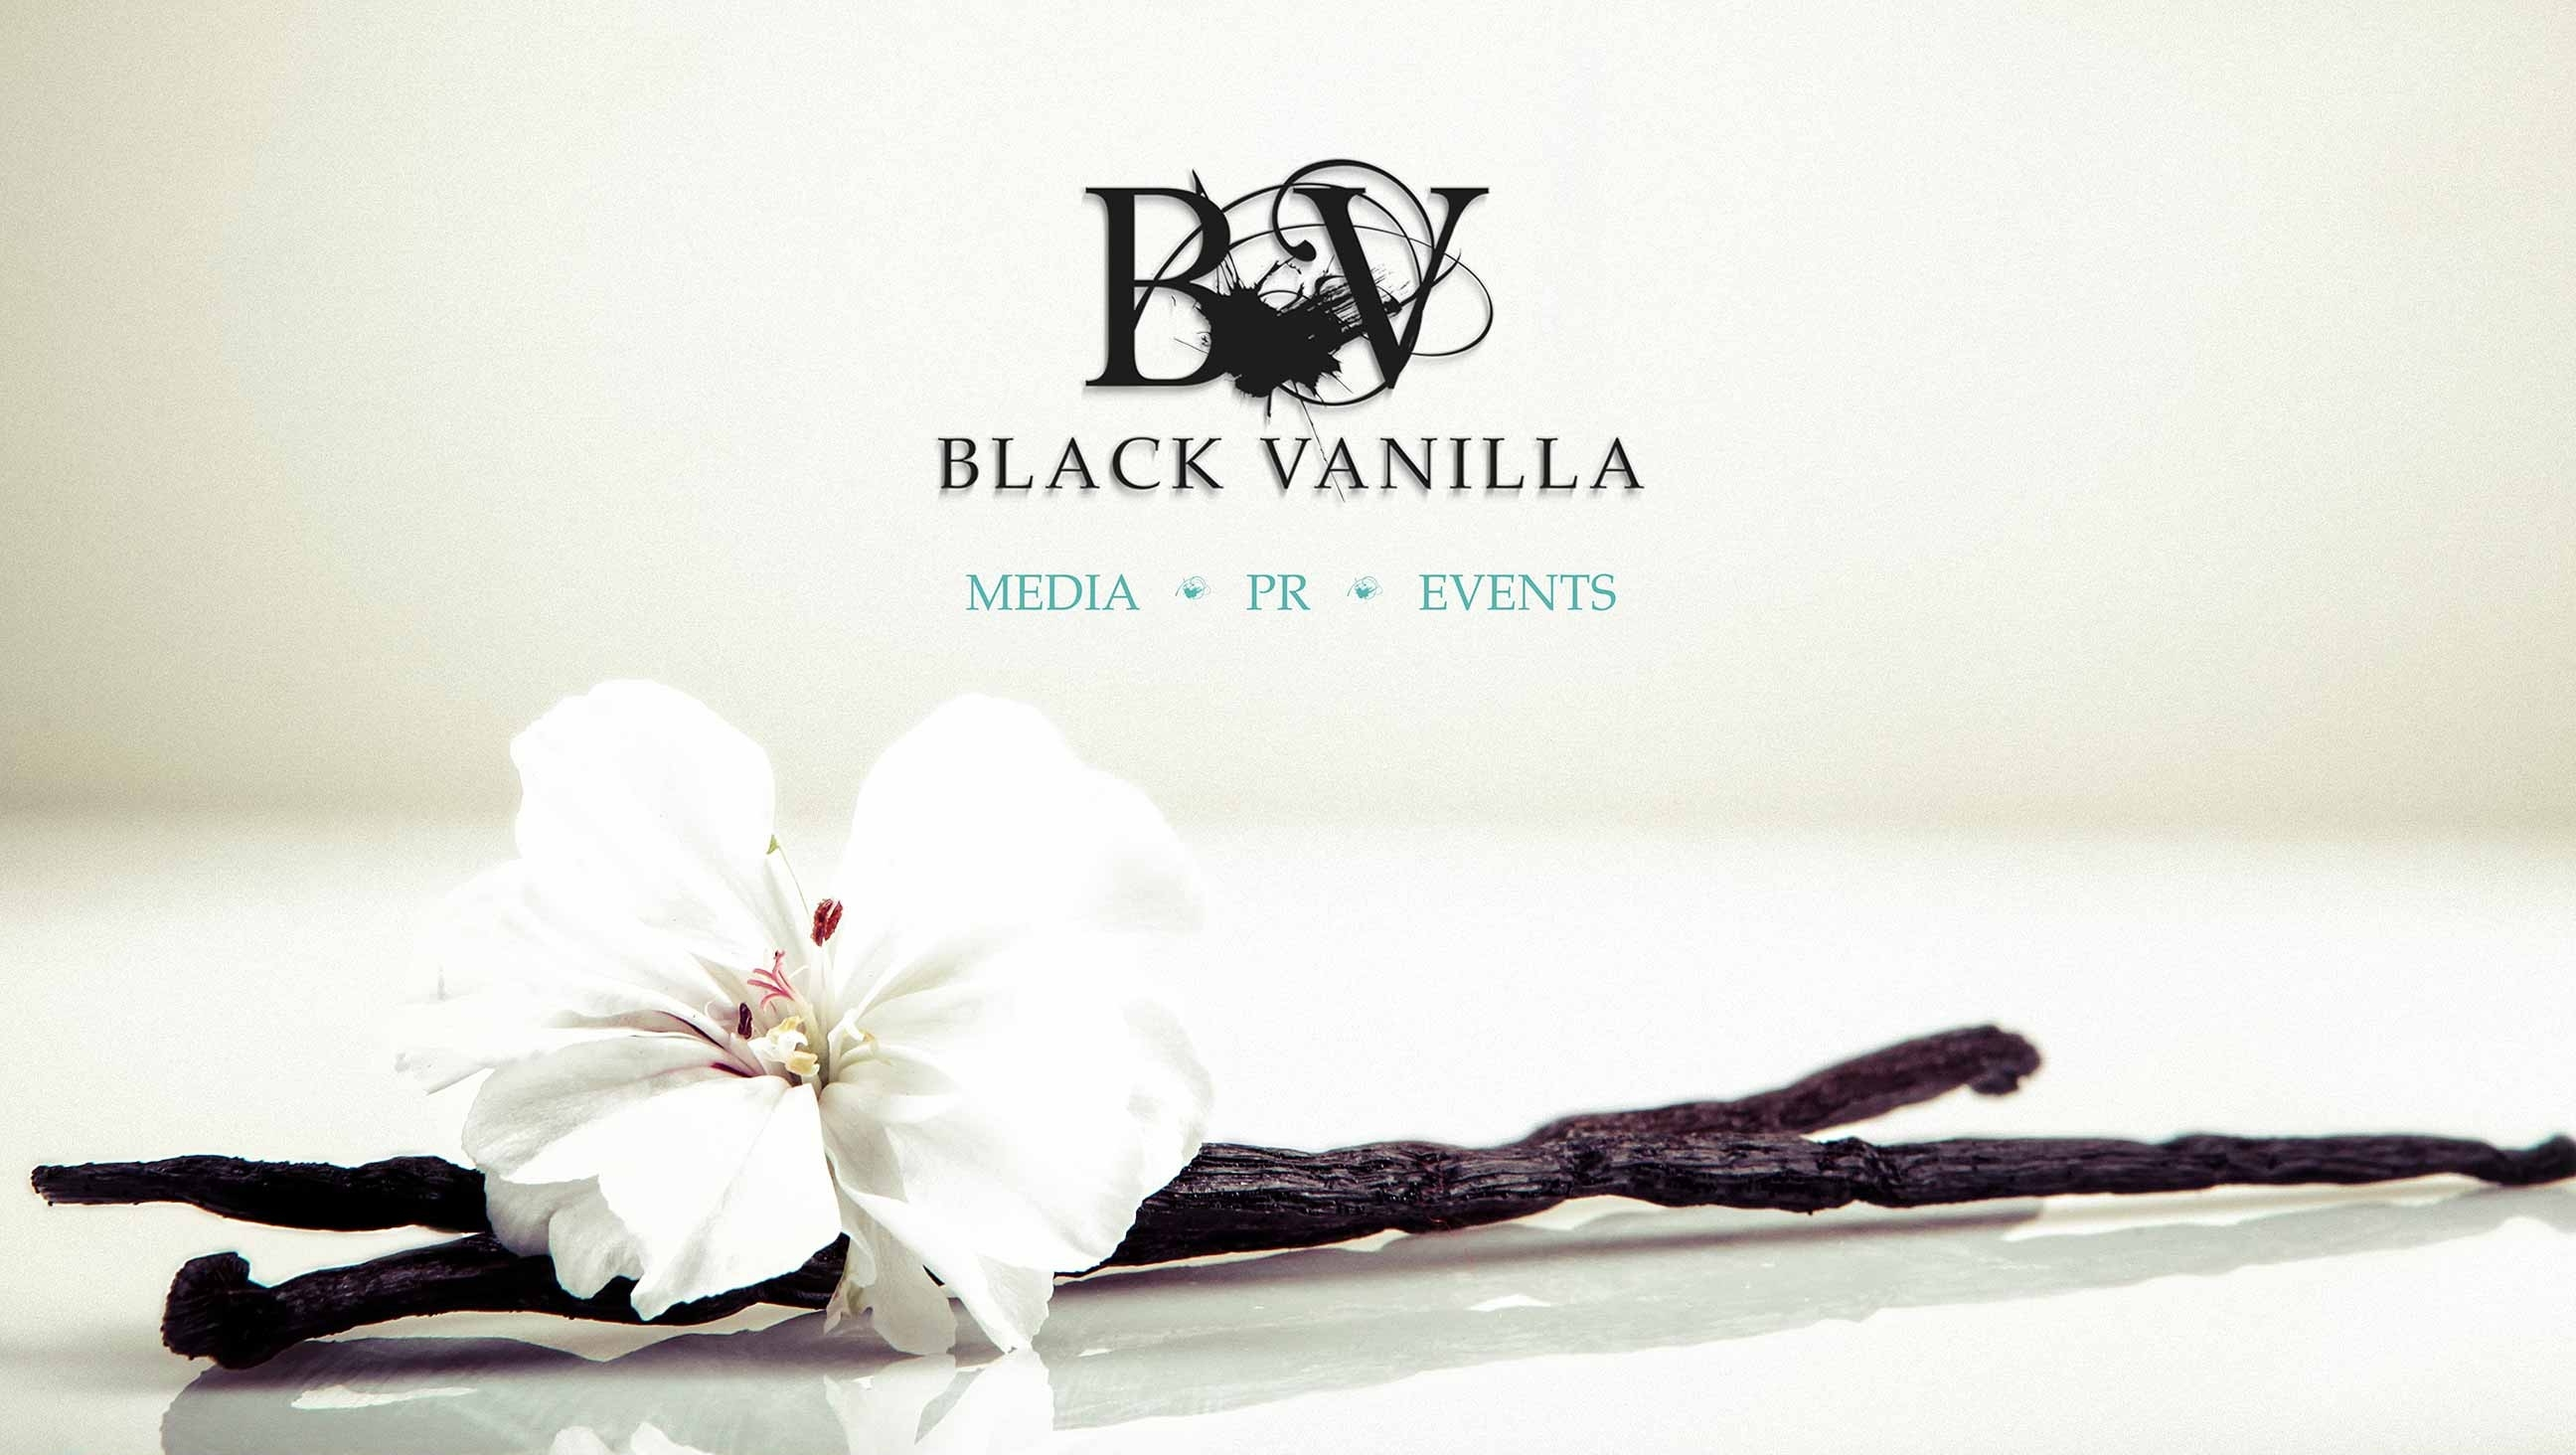 BLACK VANILLA: Media - PR - Events